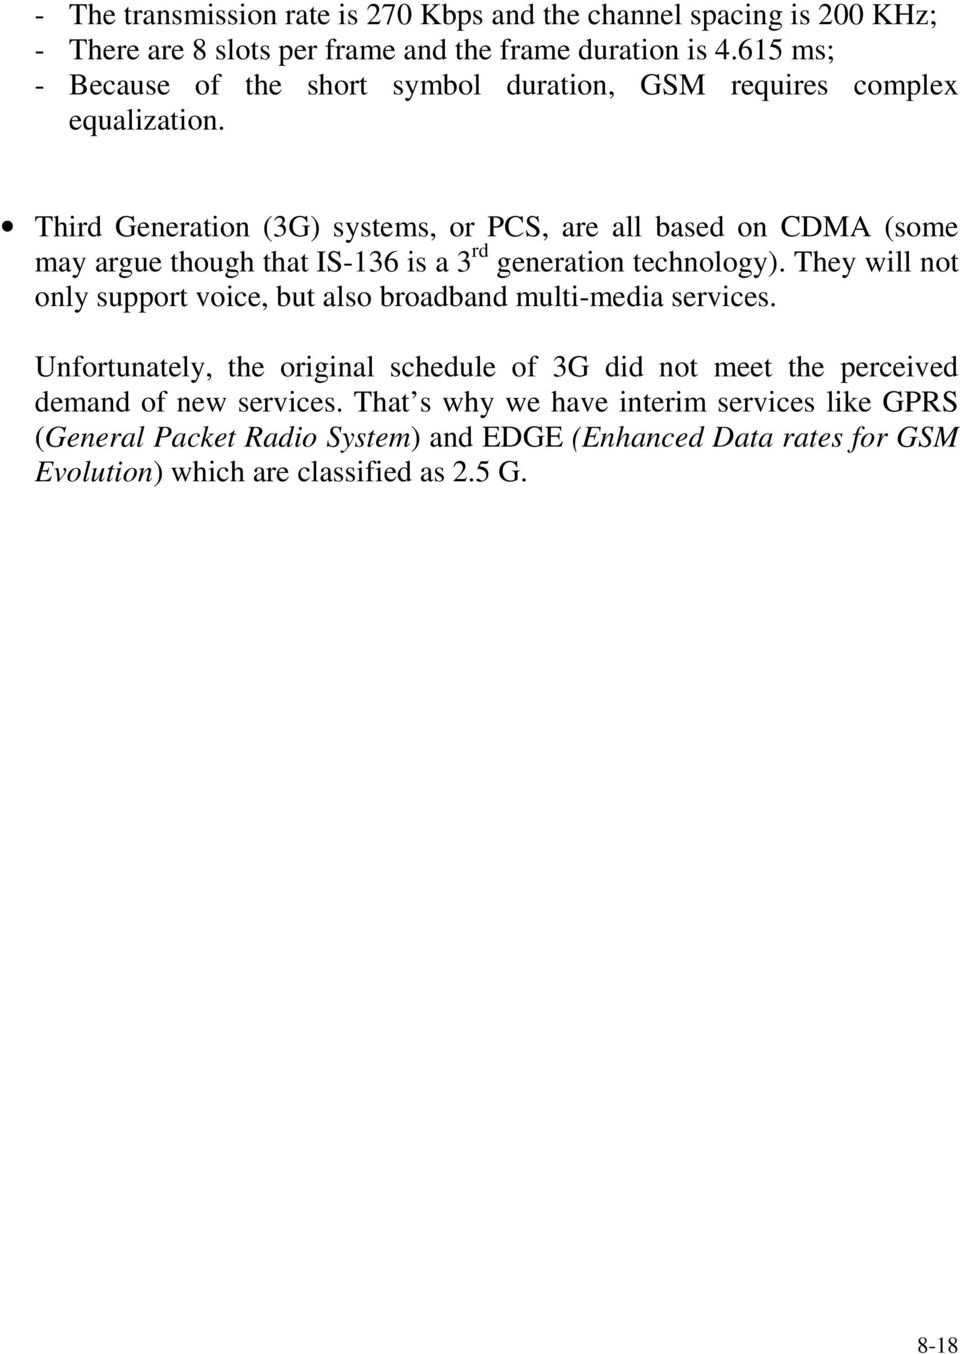 Third Generation (3G) systems, or PCS, are all based on CDMA (some may argue though that IS-136 is a 3 rd generation technology).